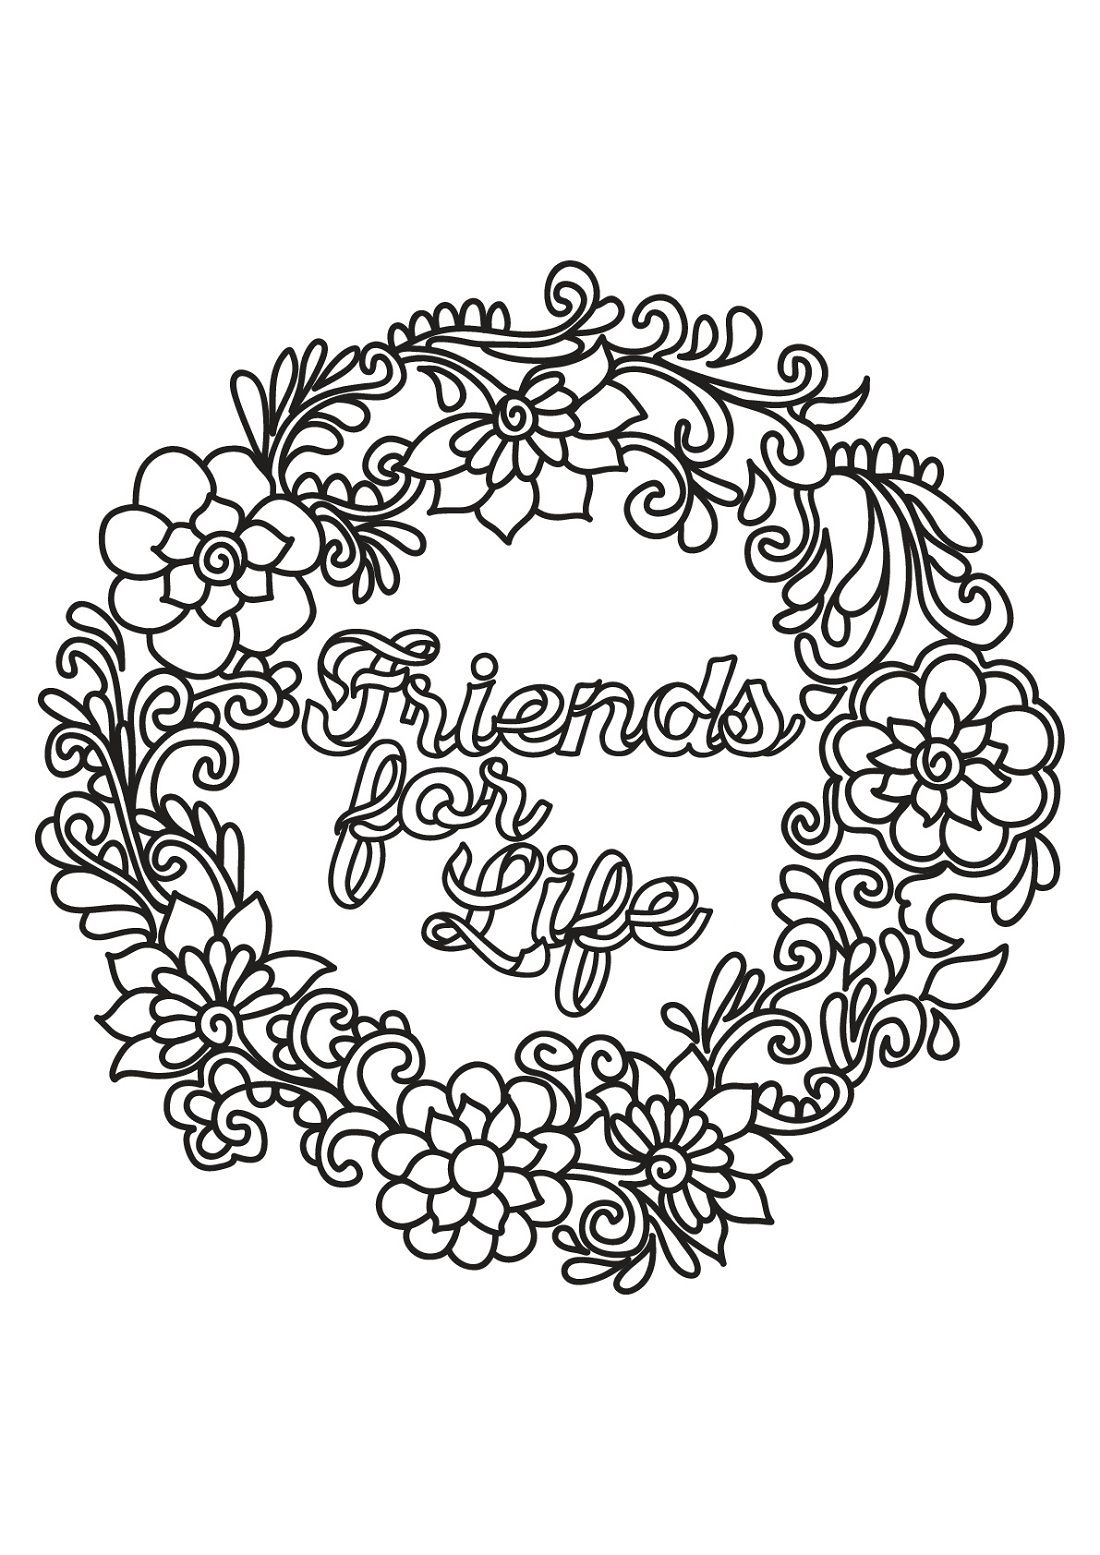 Quote And Sayings Coloring Pages Quote Coloring Pages Unicorn Coloring Pages Love Coloring Pages